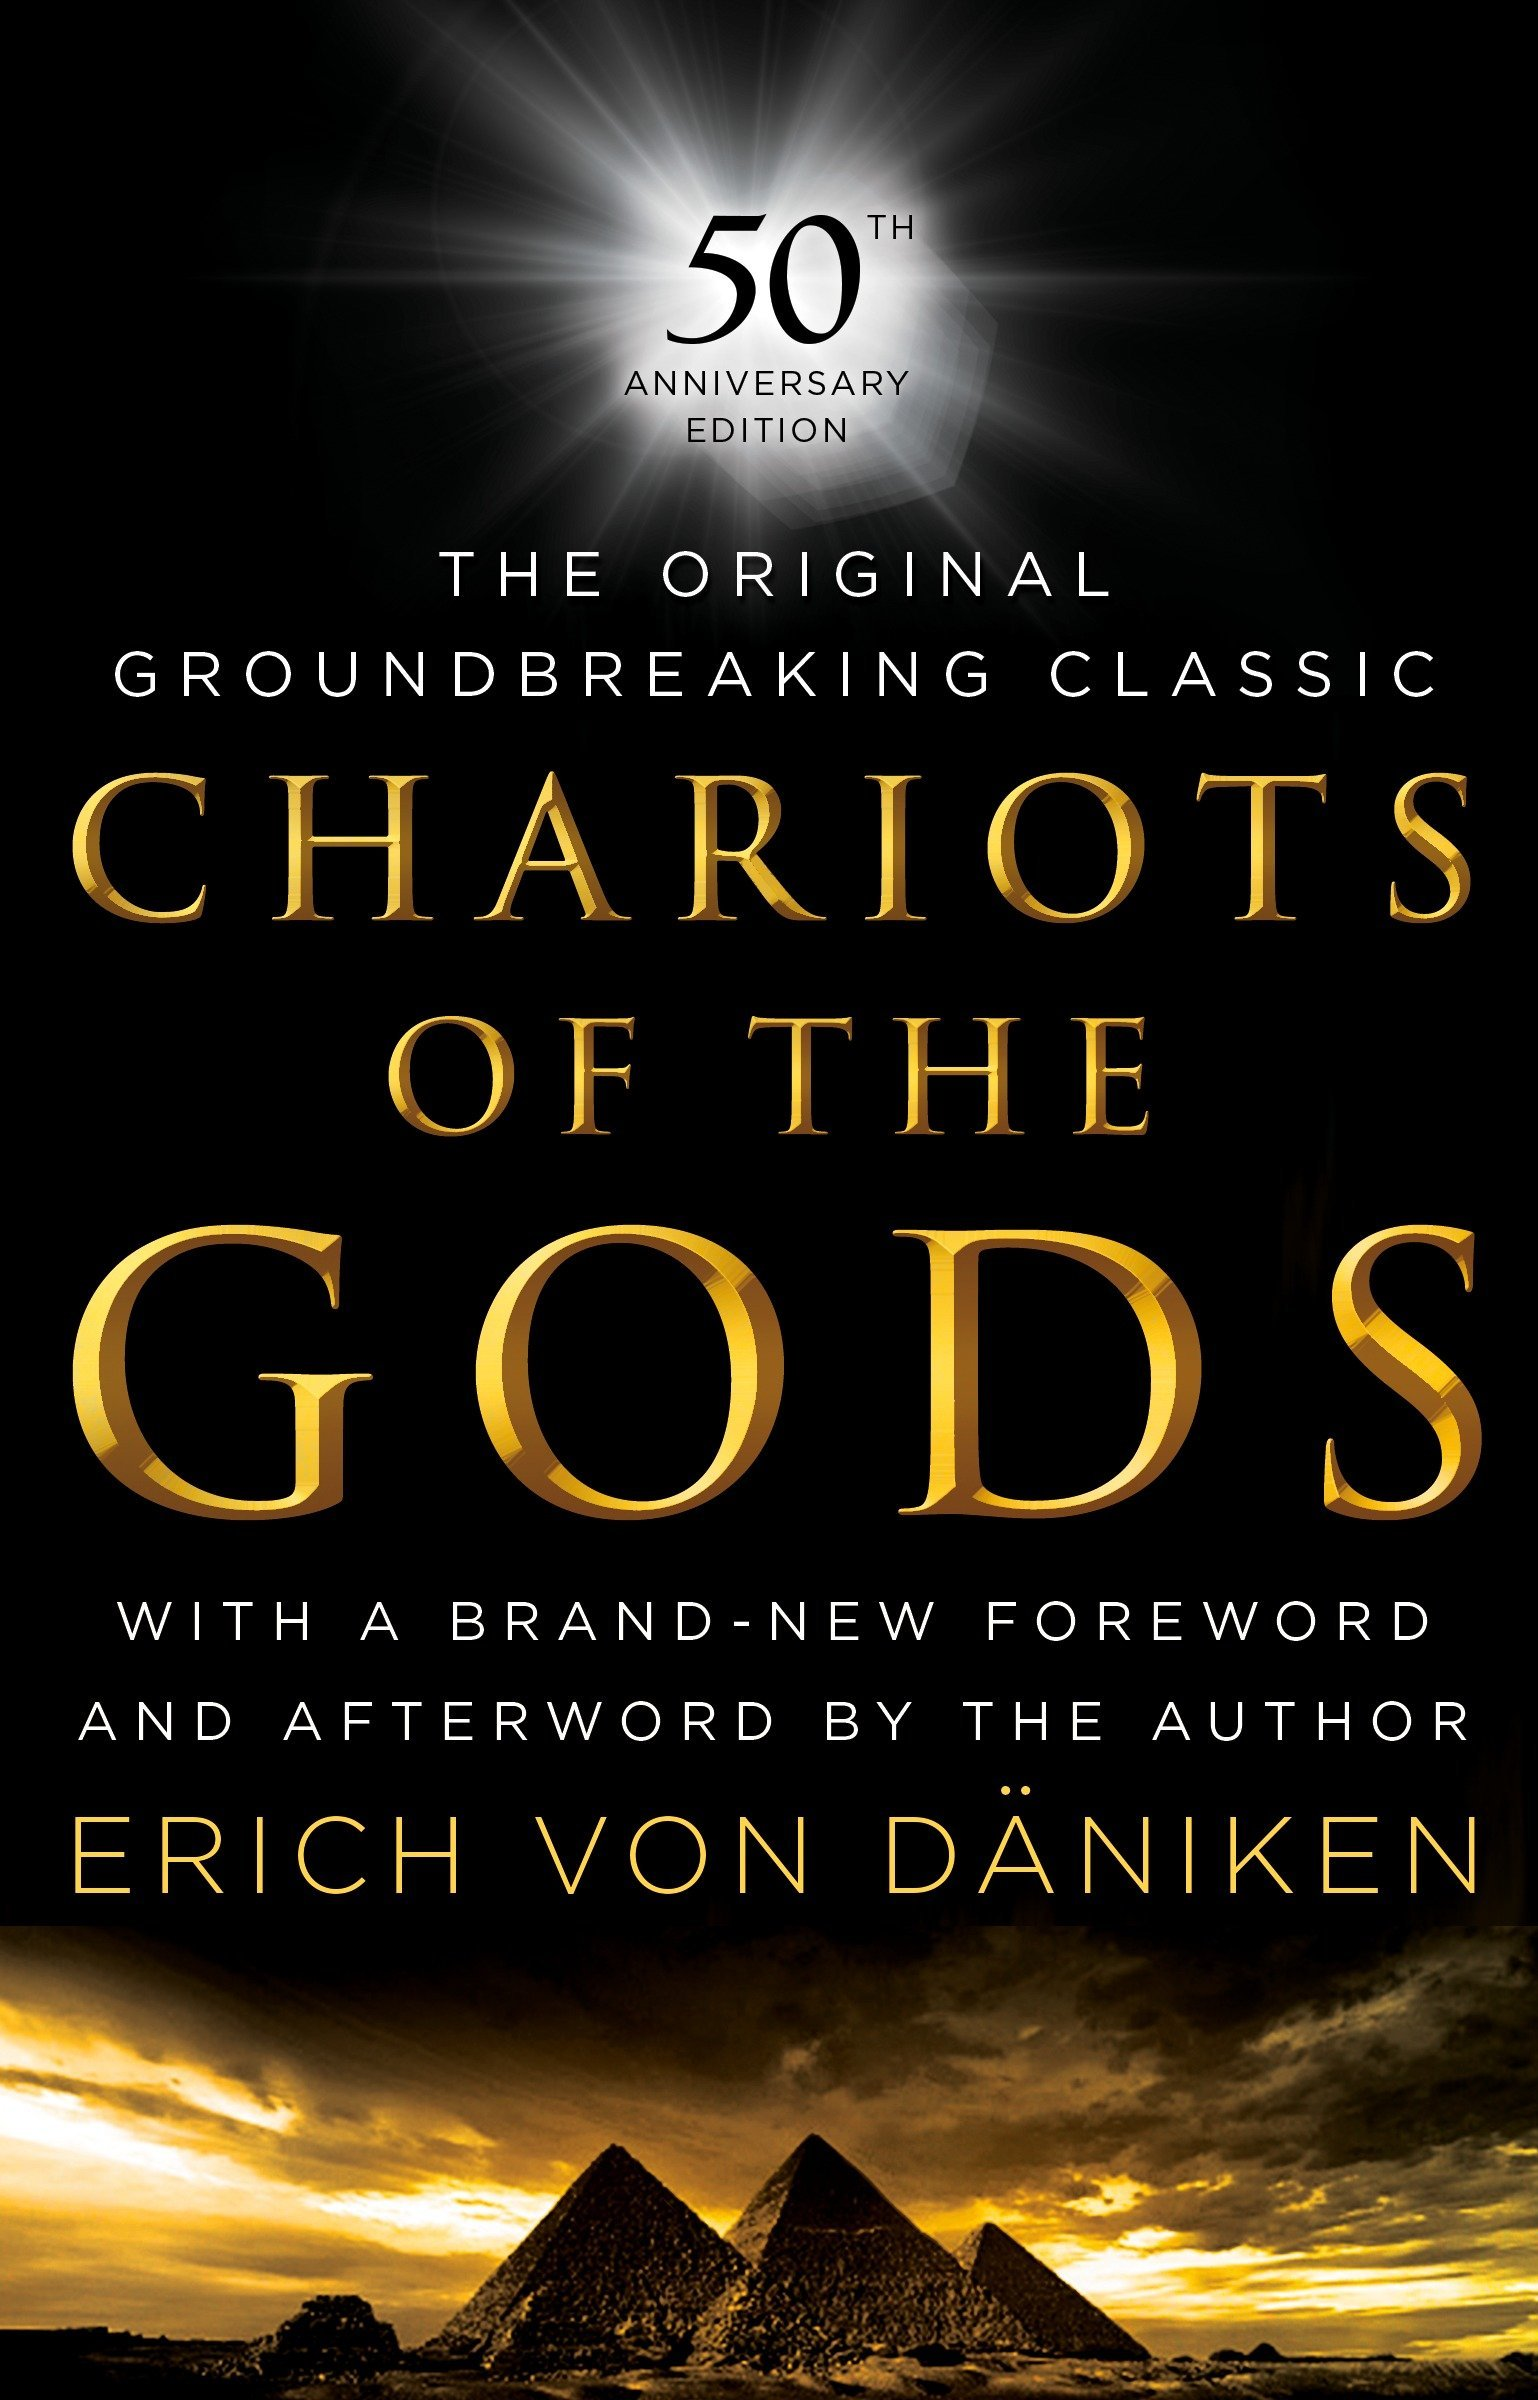 Ebook mysteries unsolved download free of the gods of the chariots past